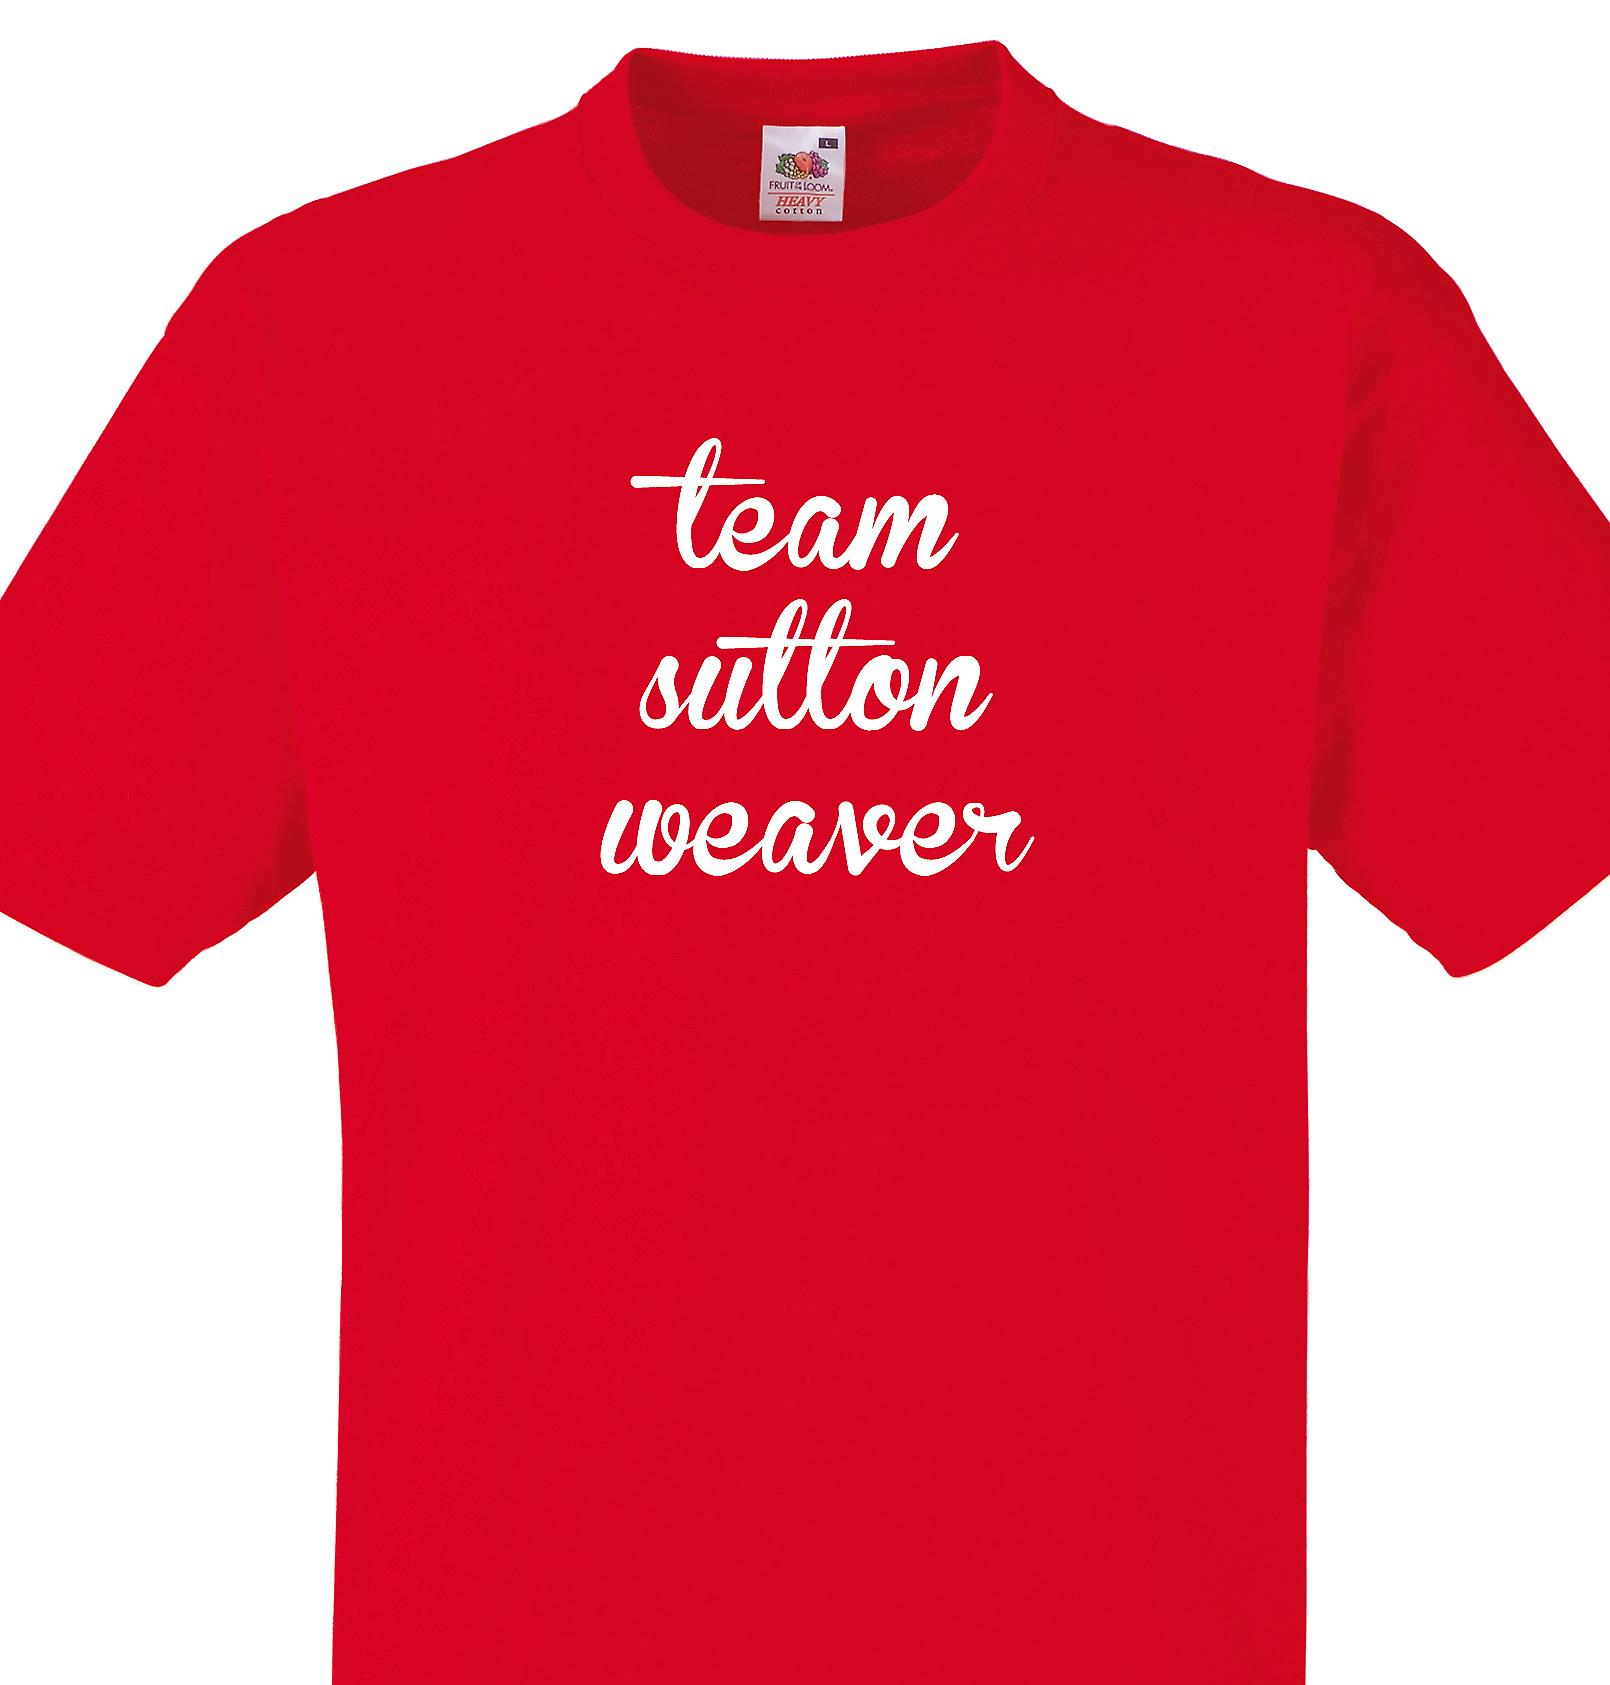 Team Sutton weaver Red T shirt